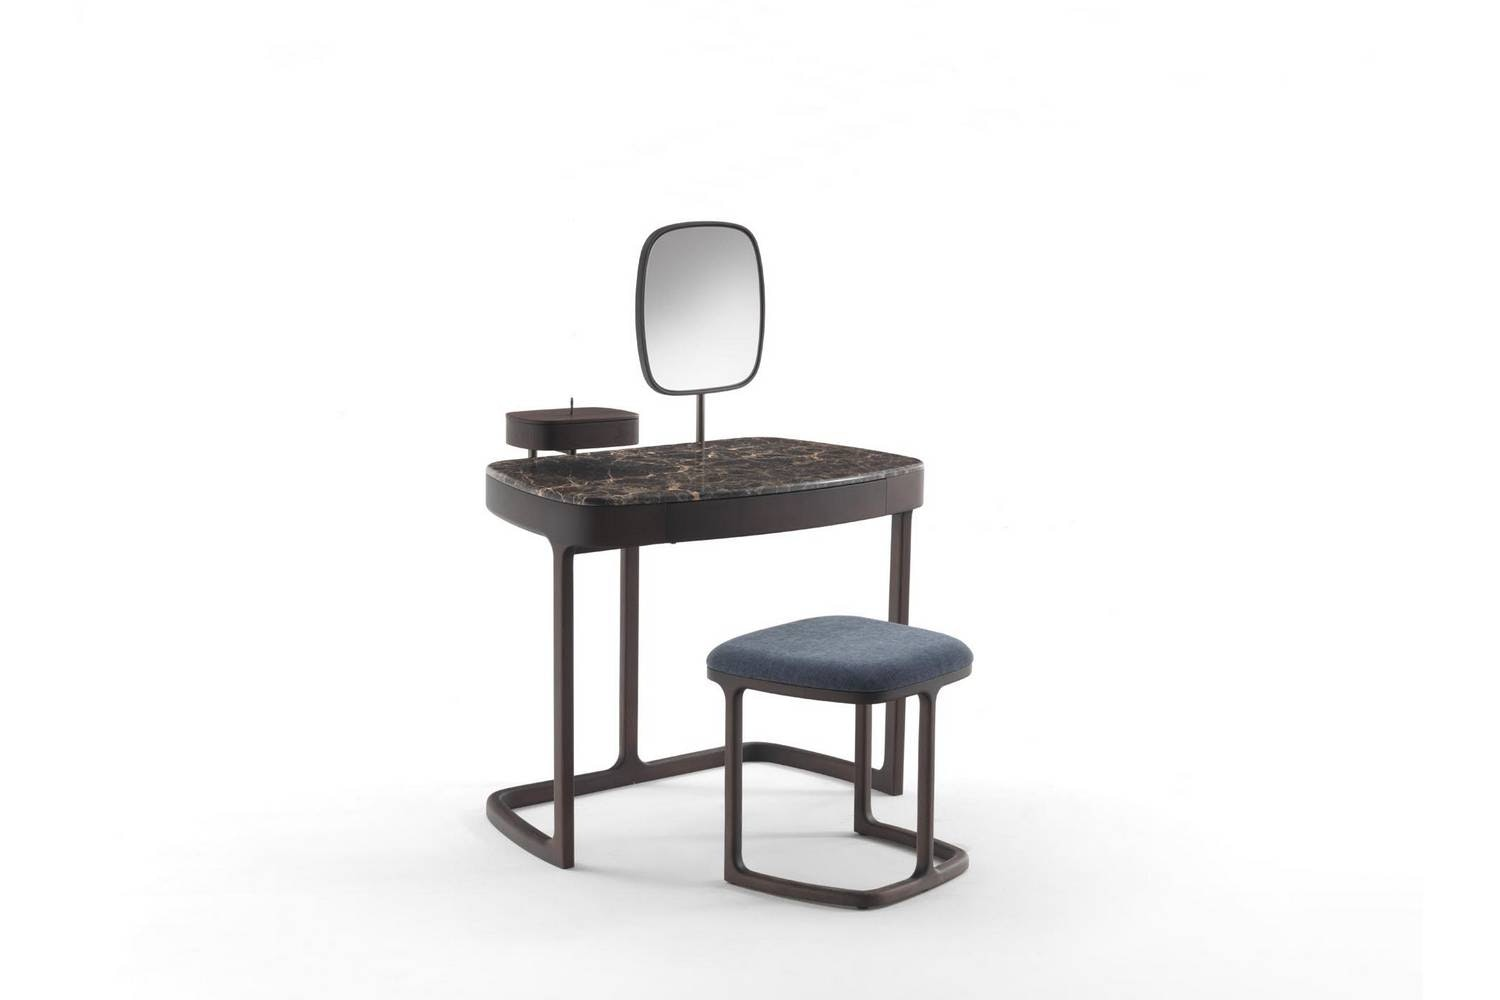 Maskara Dressing Table by Emmanuel Gallina for Porada